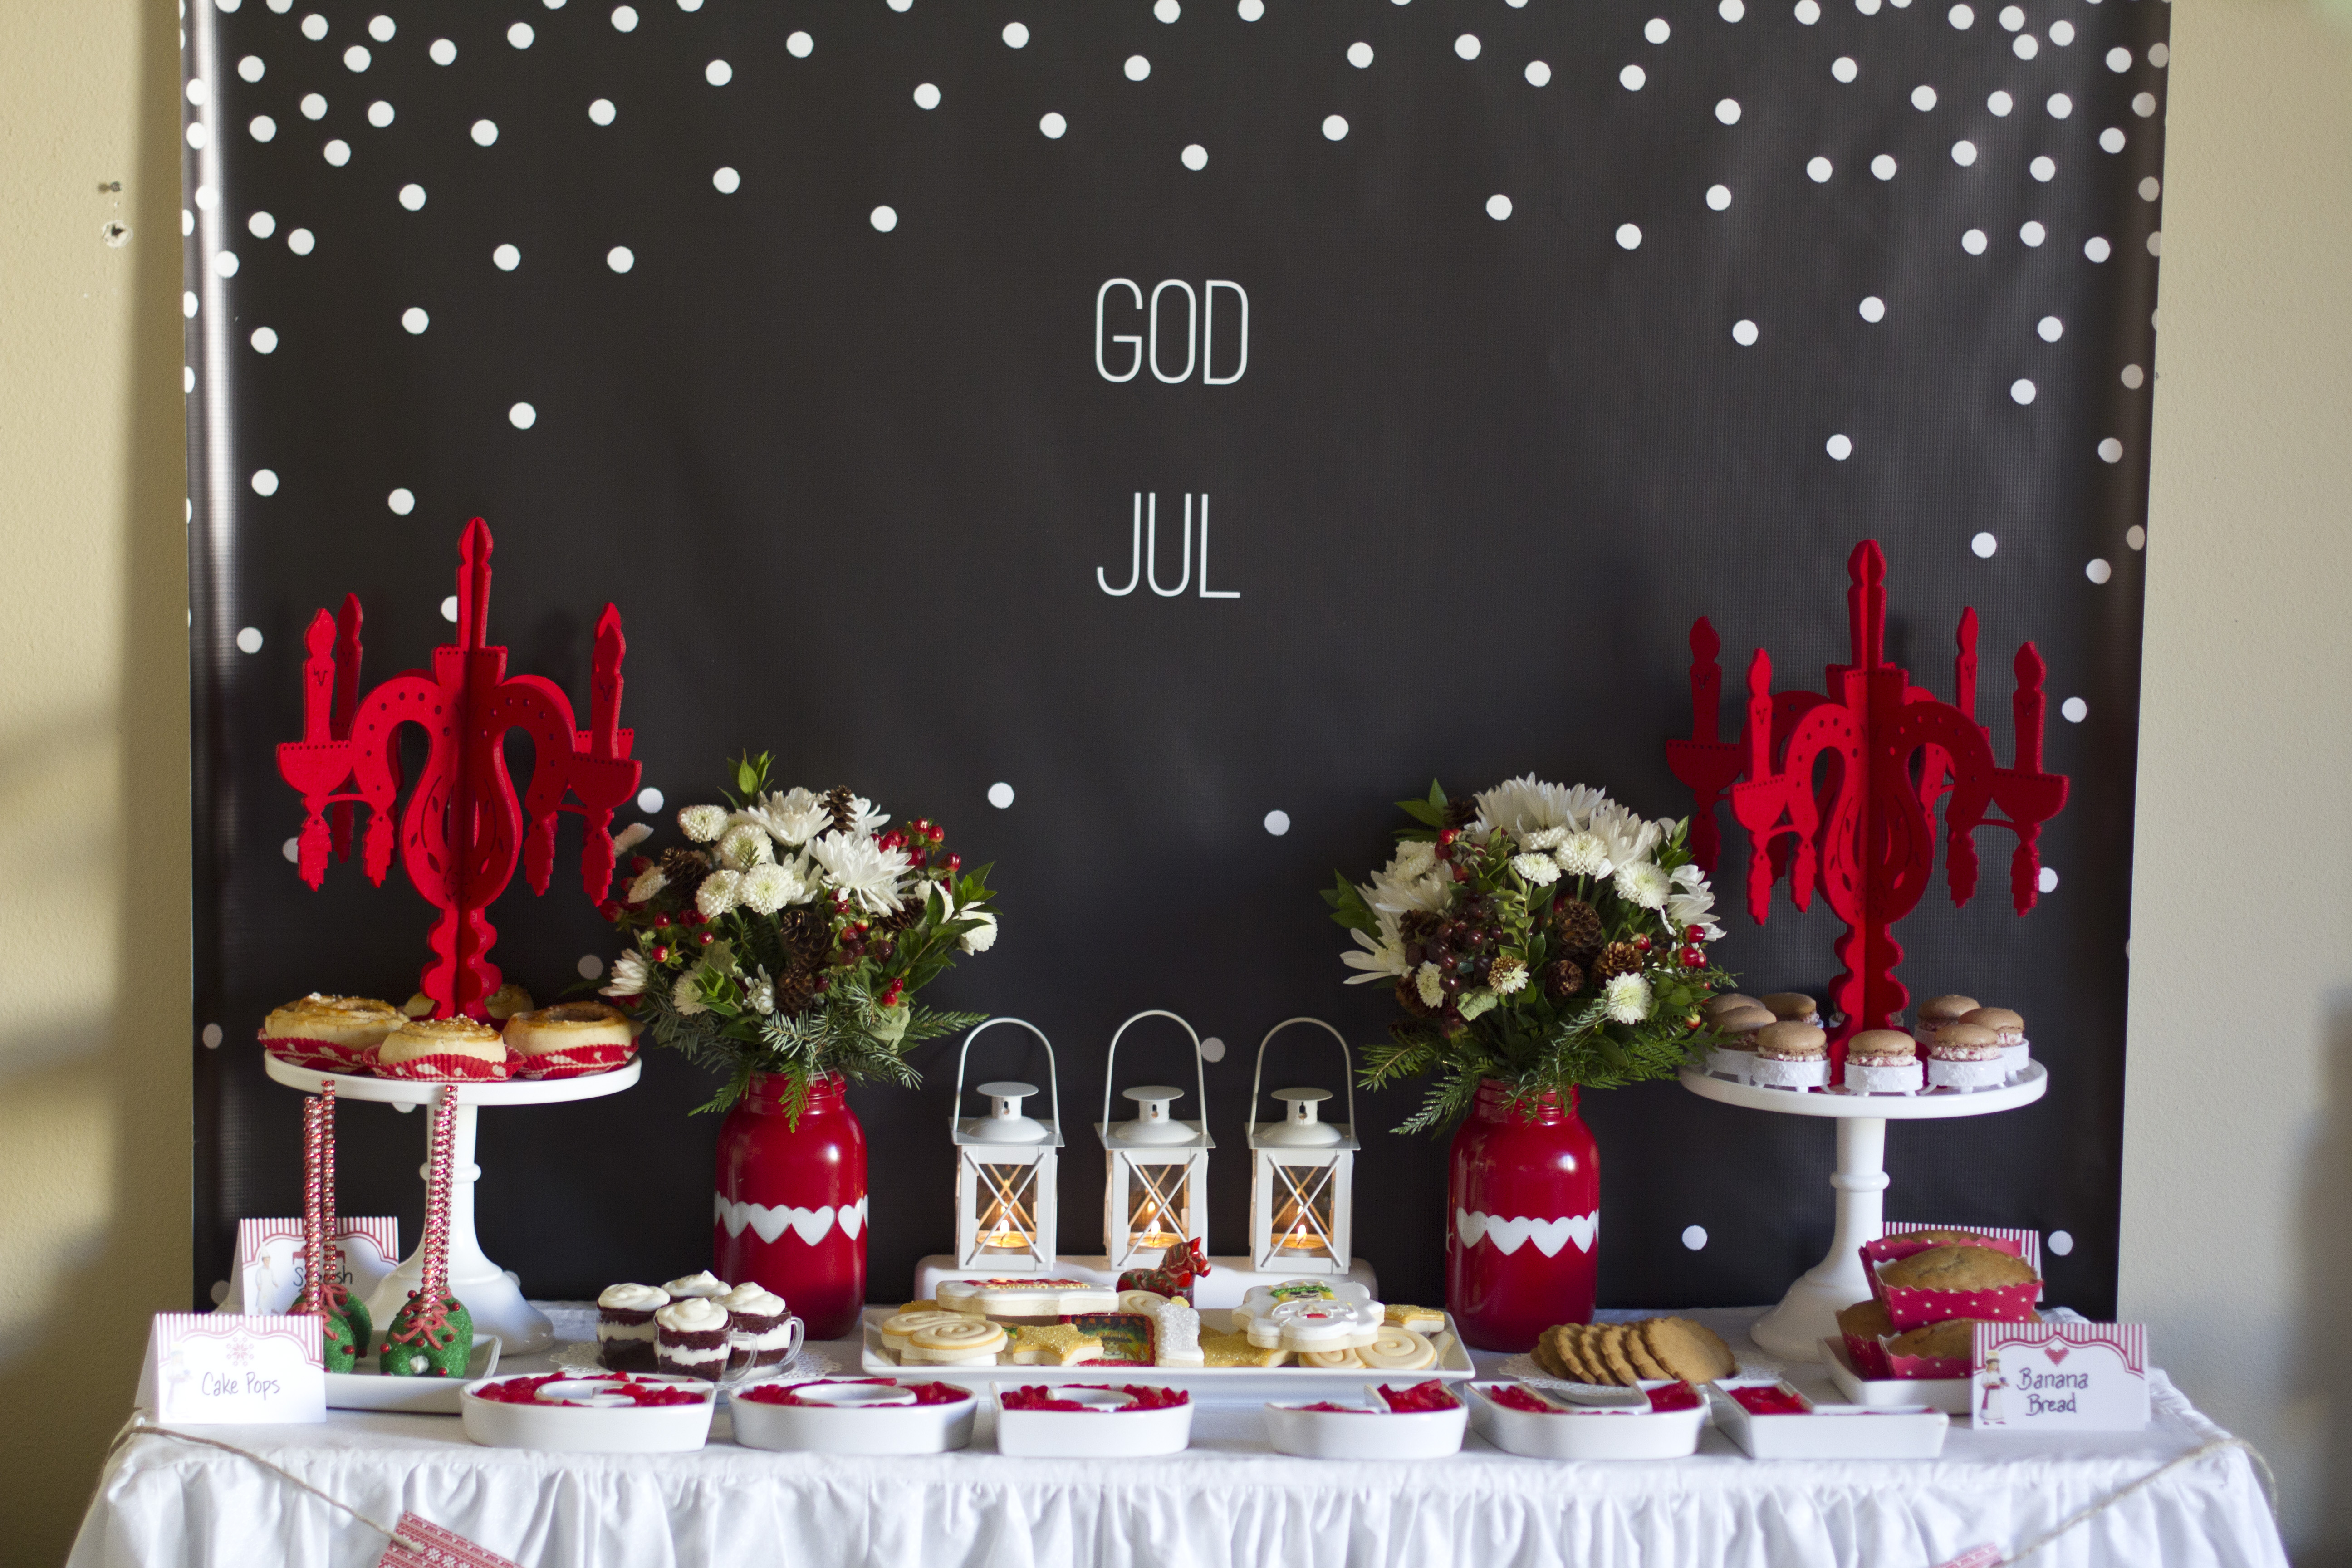 God Jul Backdrop